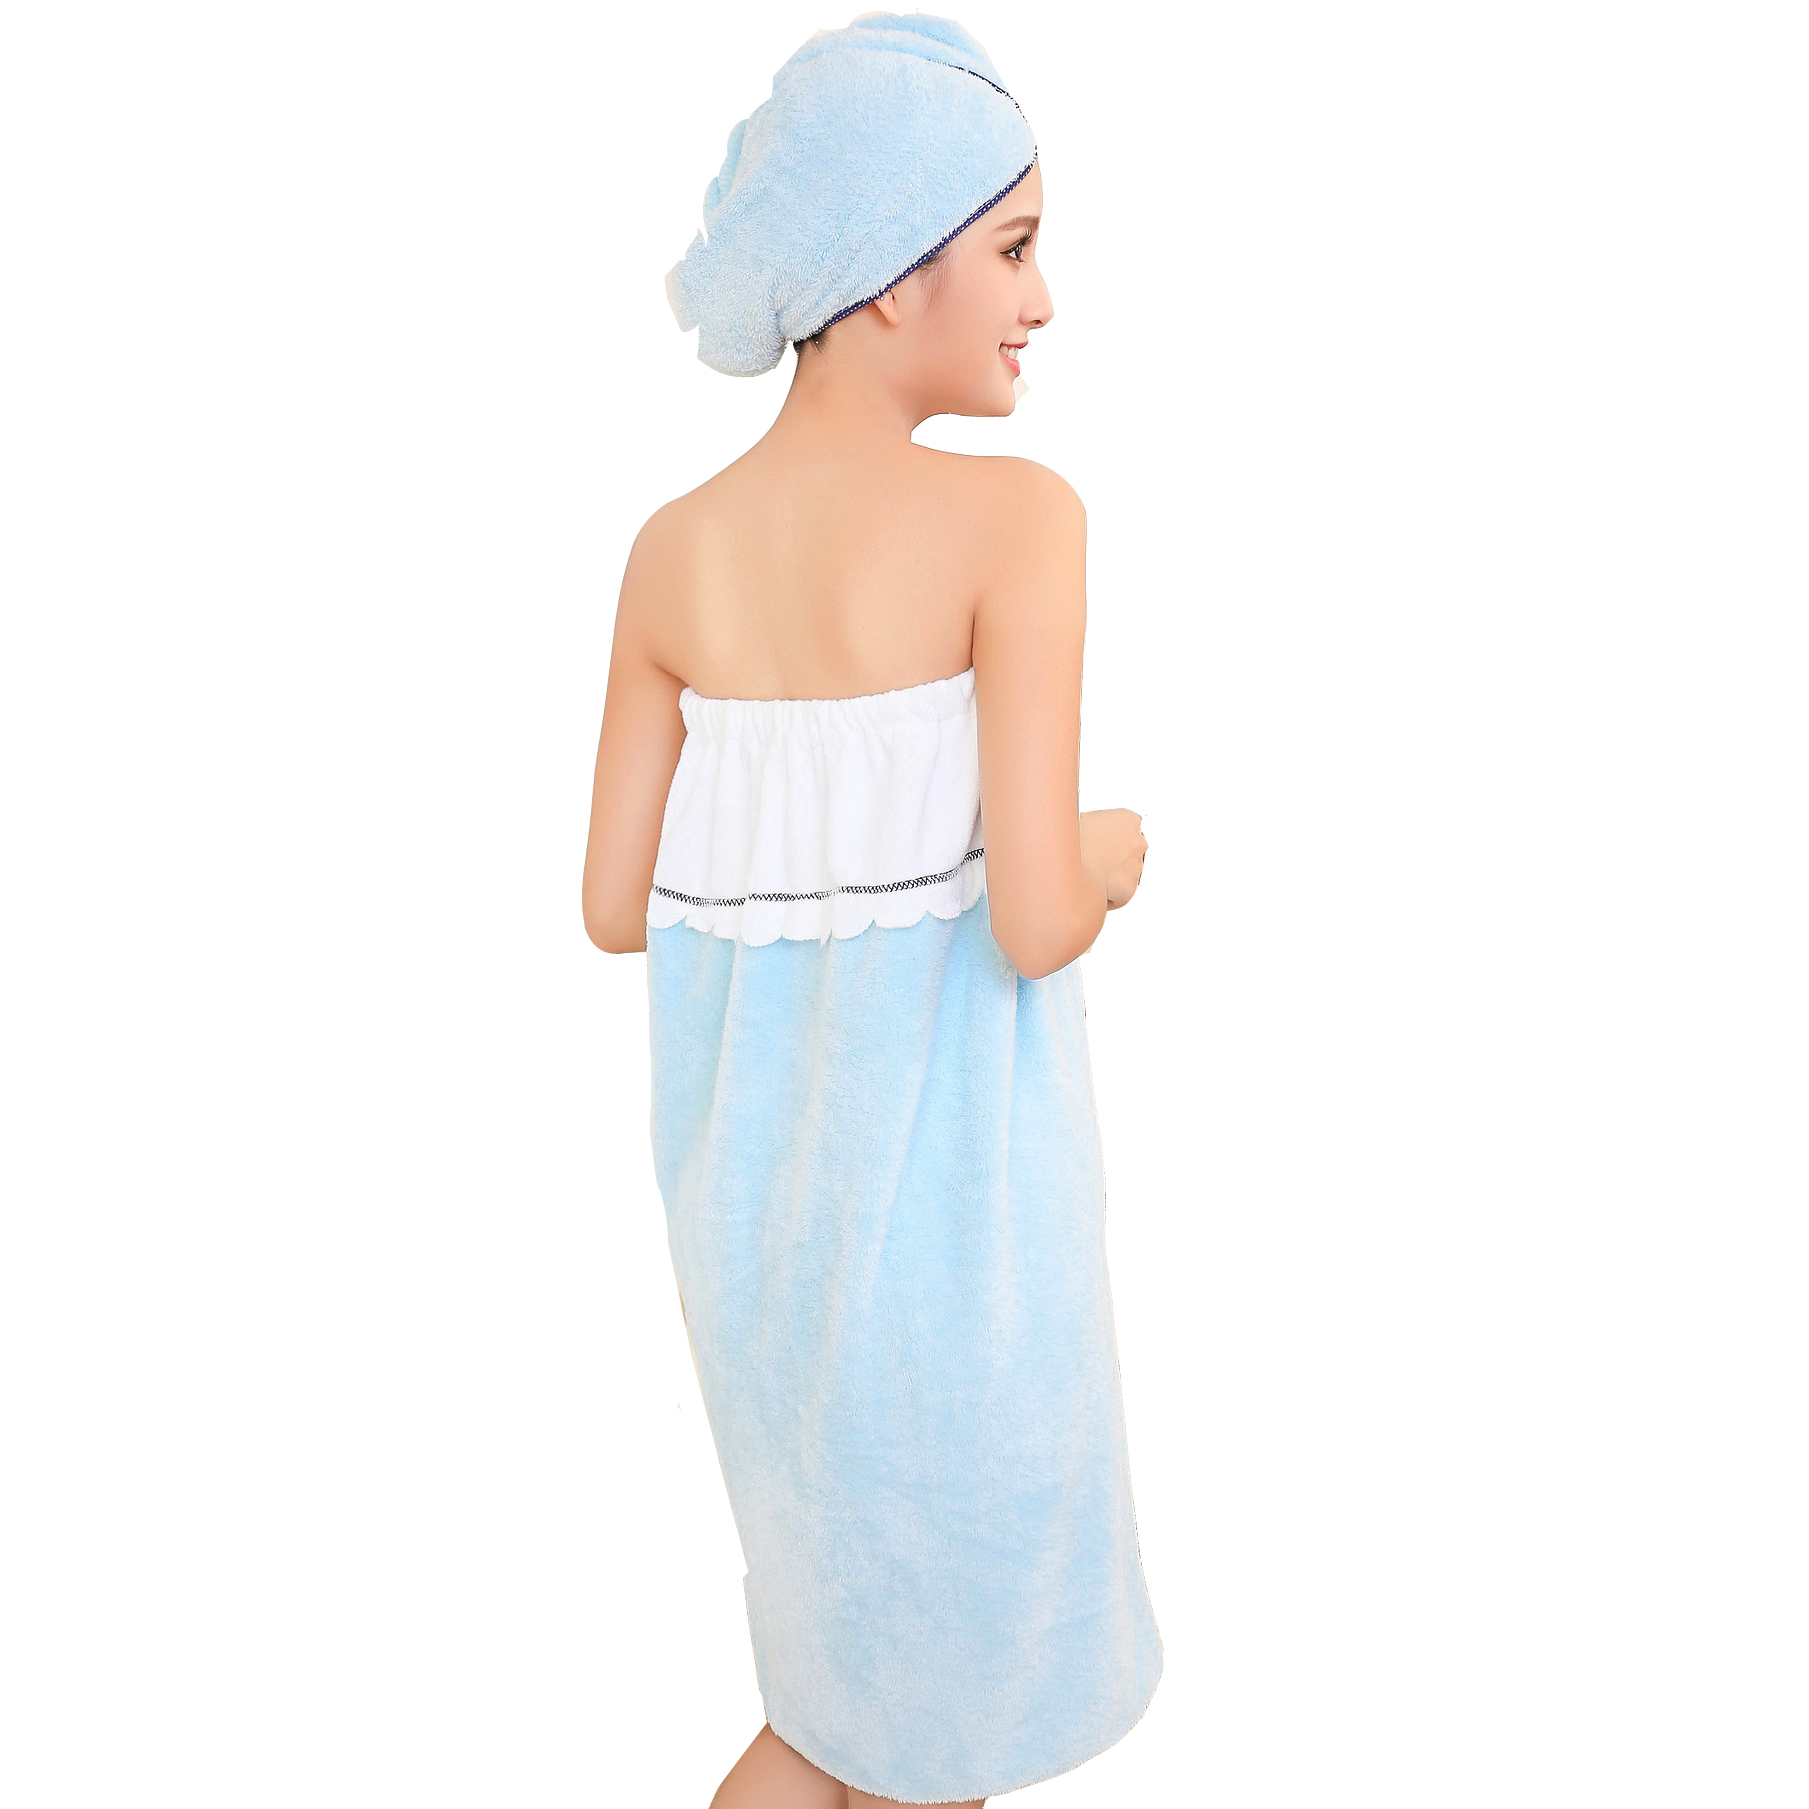 Honana Bx R970 Able Wear Spa Microfiber Soft Bathrobe Women Skirt Bath Towel With Bath Cap